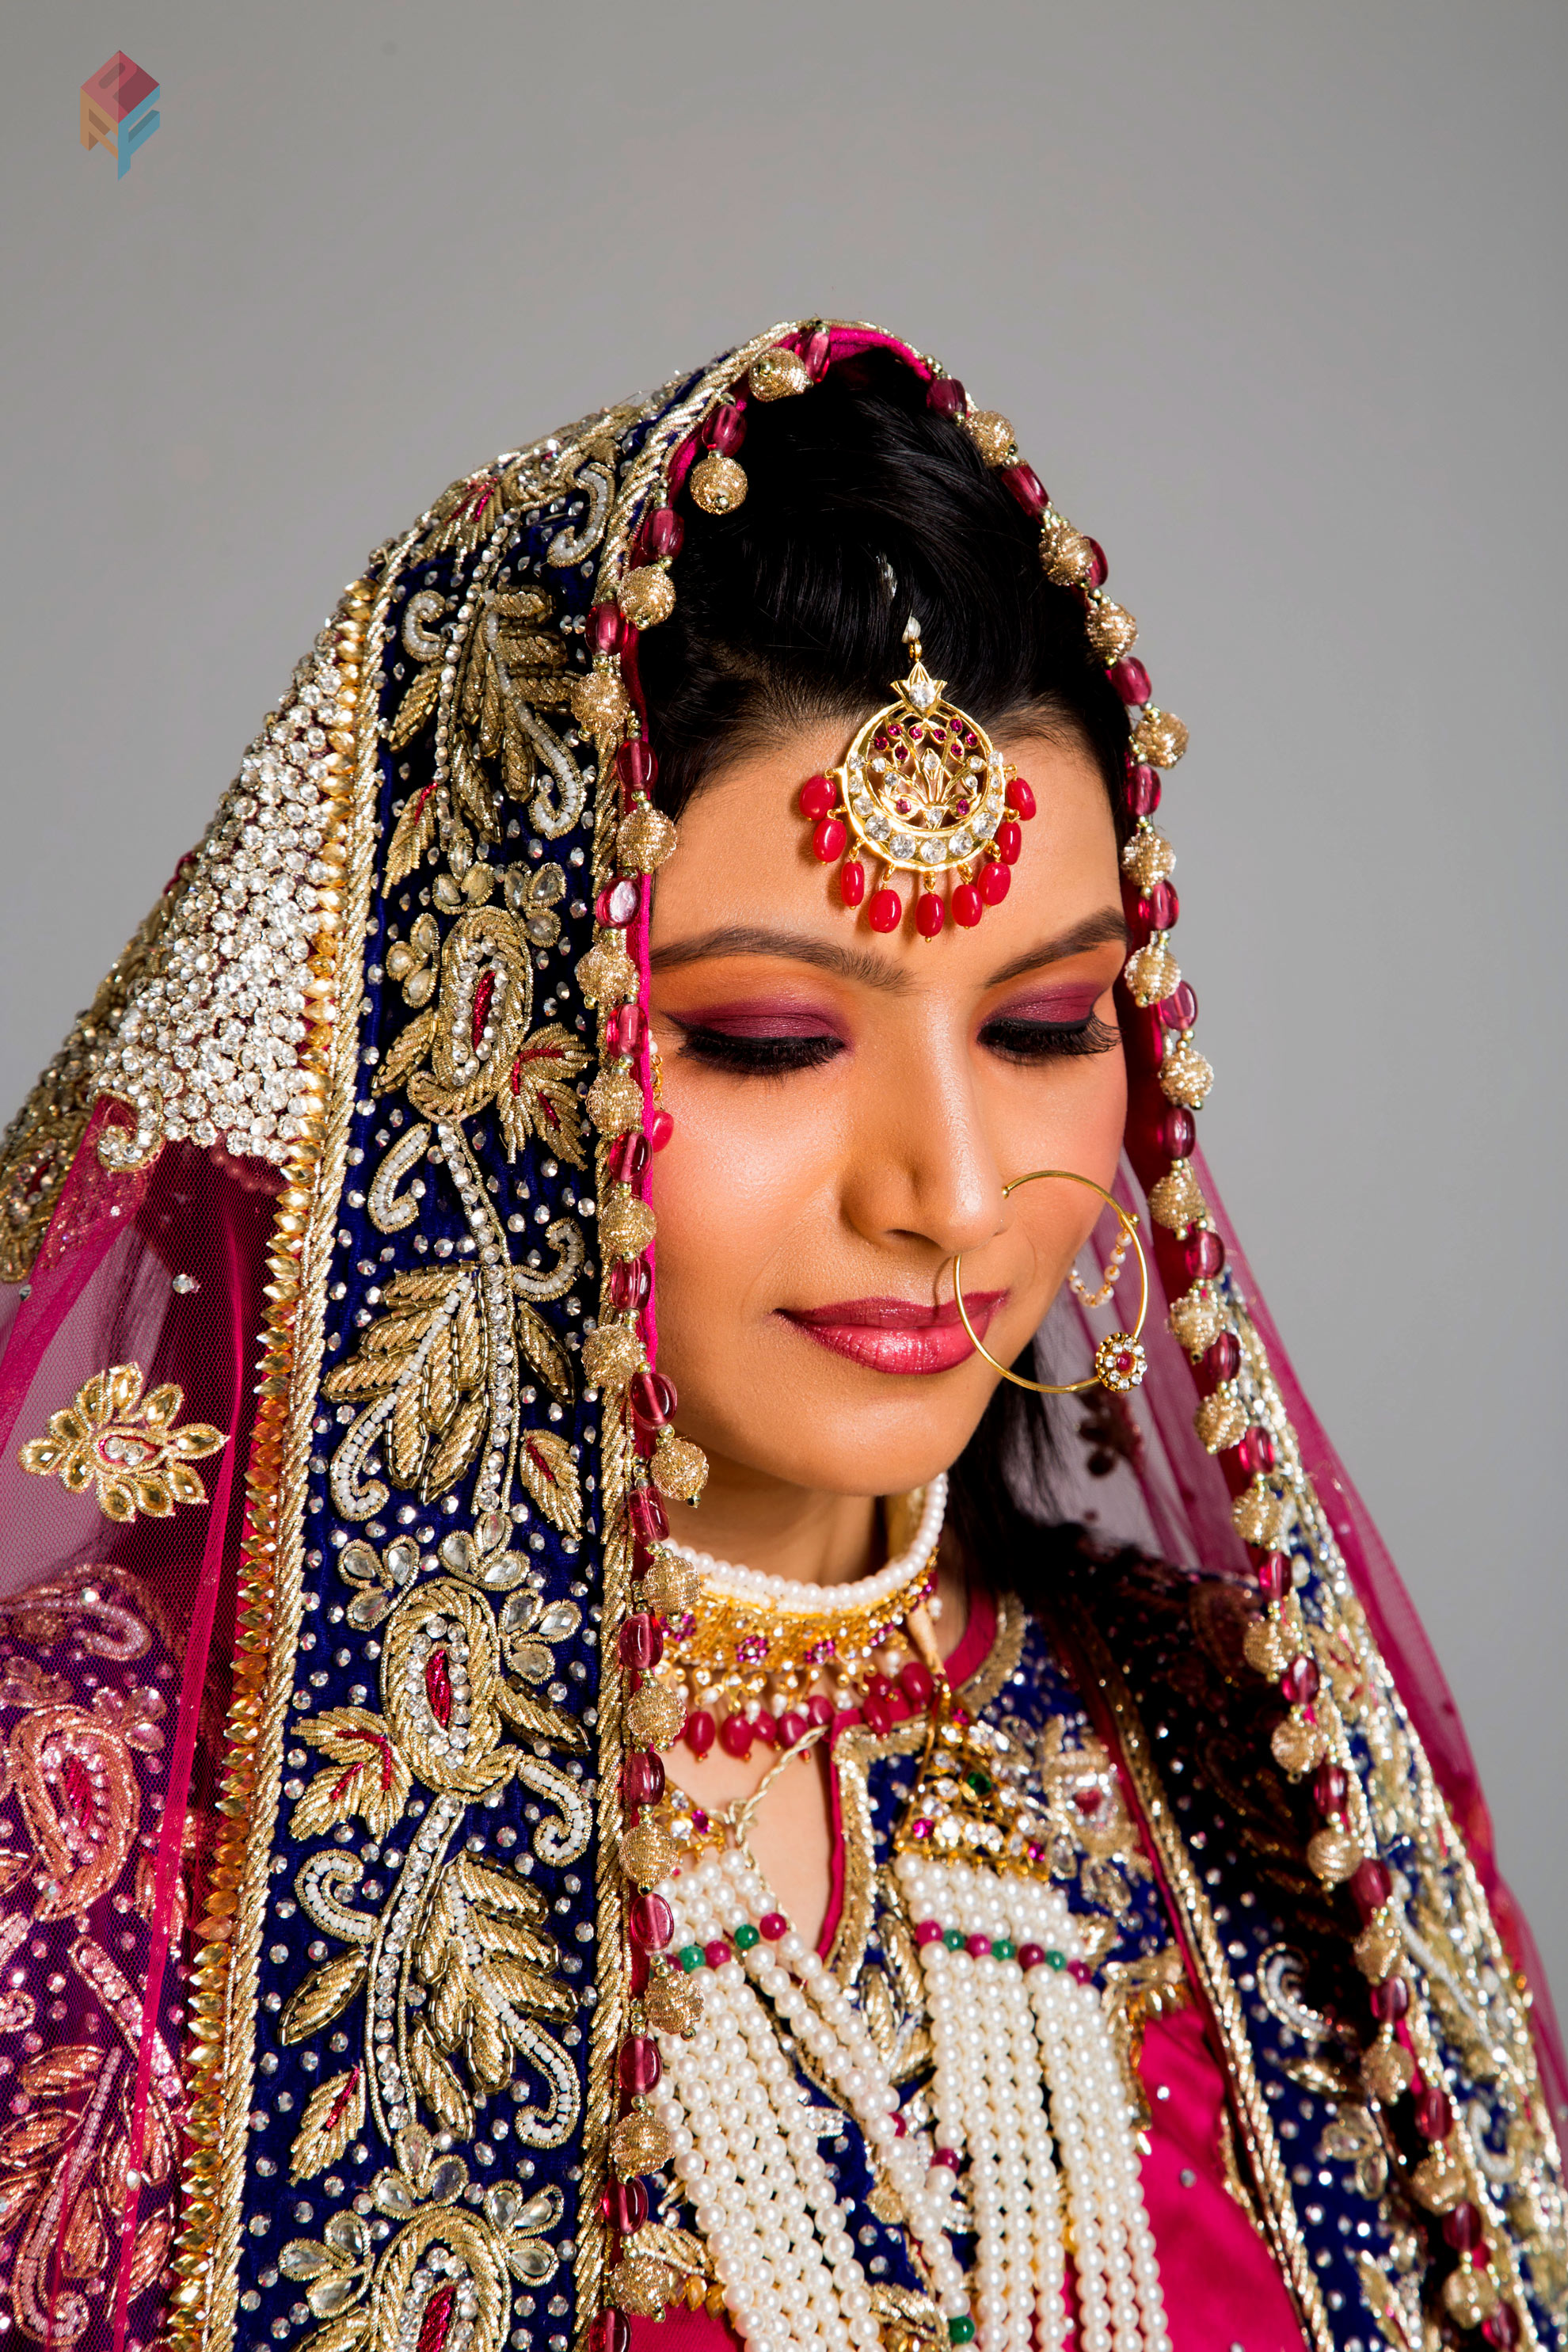 Tahniyat_Bridal_1_Blur_Optimized